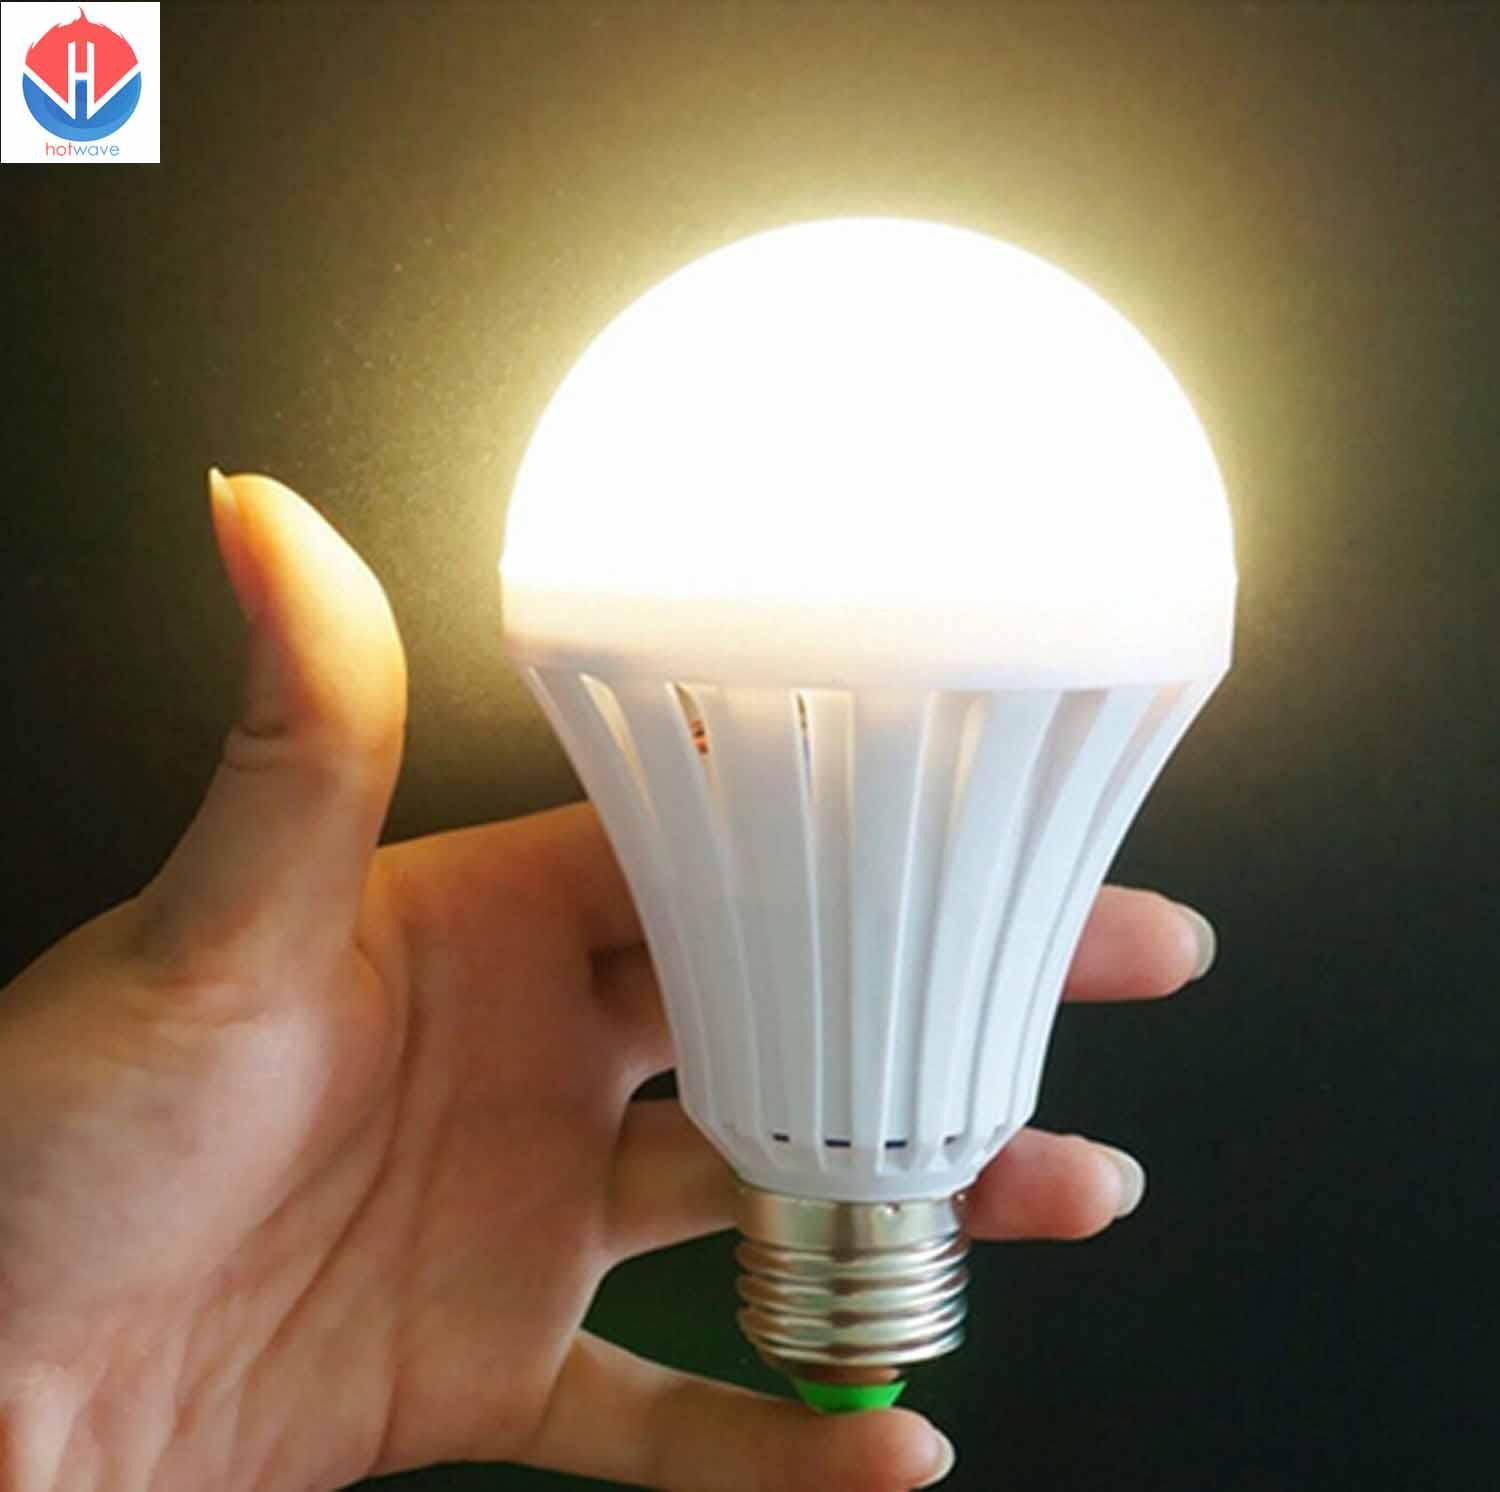 Light Bulbs For Sale Led Prices Brands Review In Wiring Up A Emergency 9w Smart Intelligent Bulb Waterproof